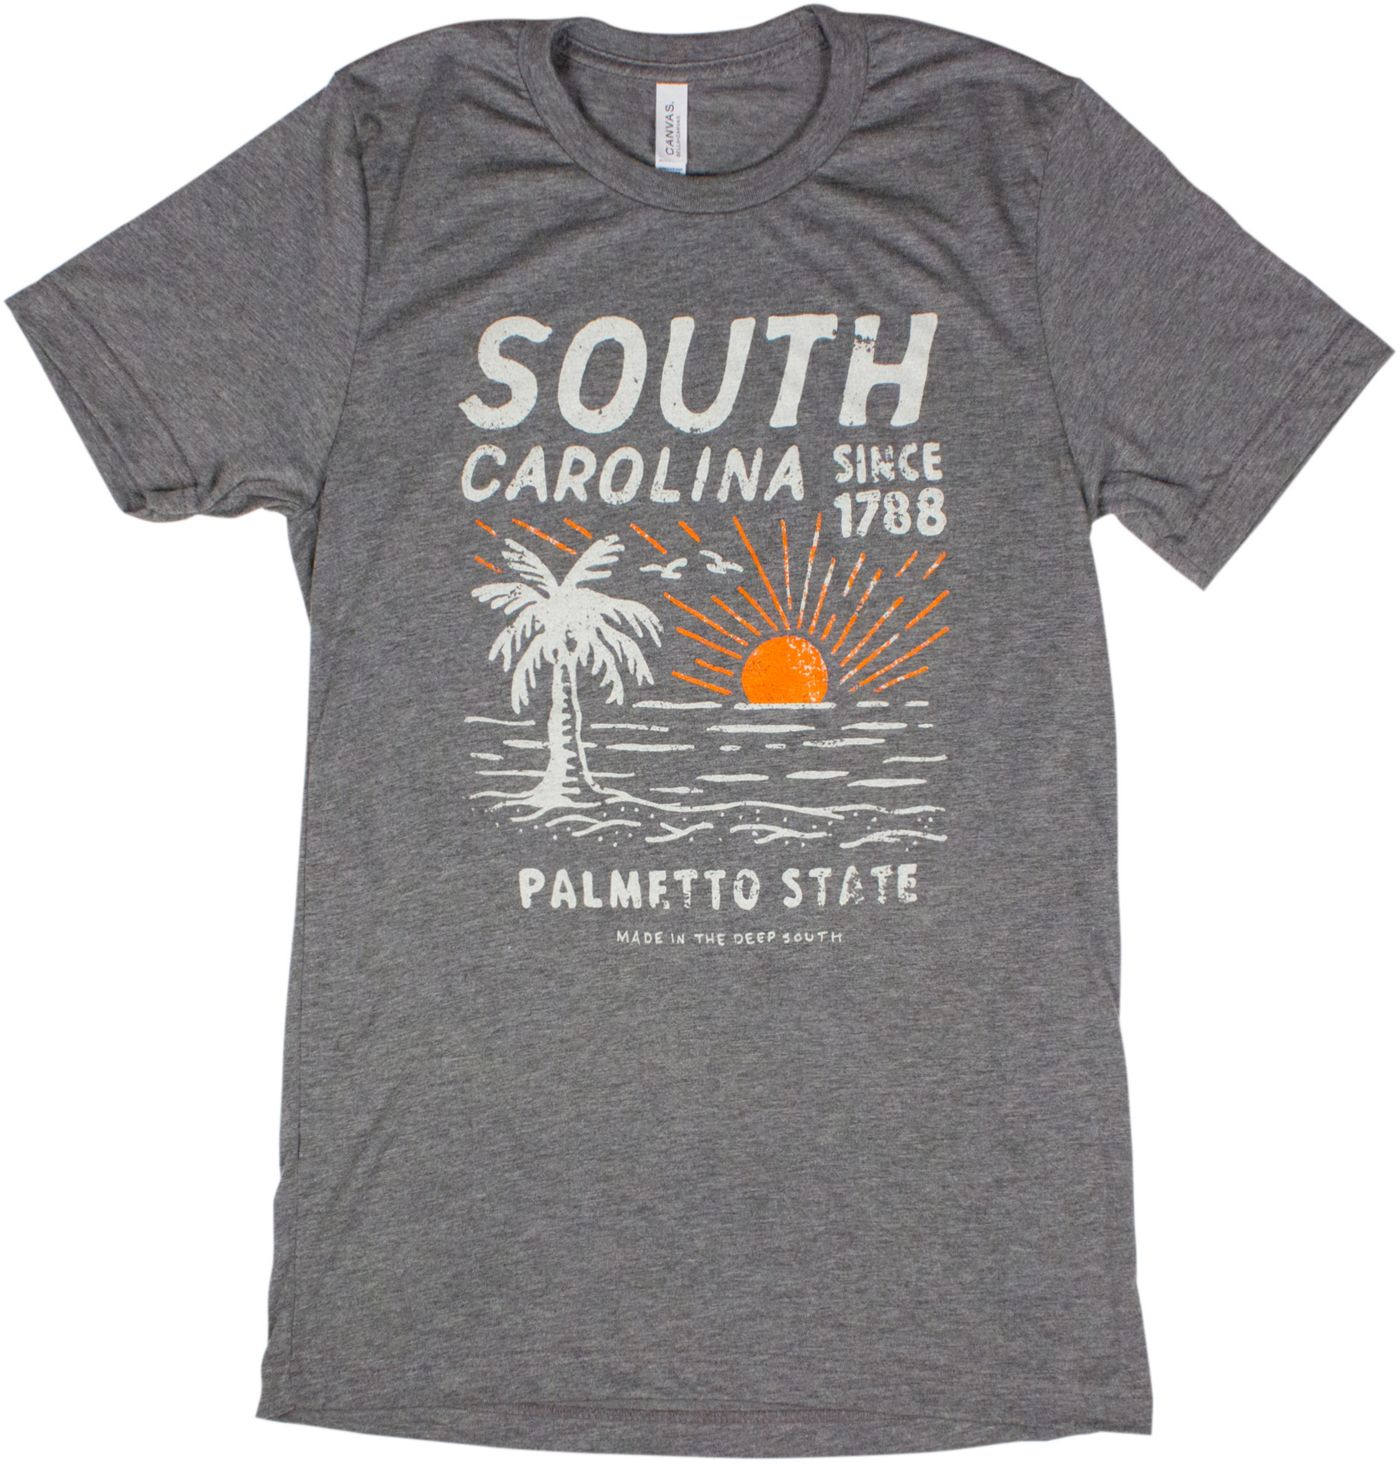 Home State Apparel Men's South Carolina Since 1788 Short Sleeve T-Shirt